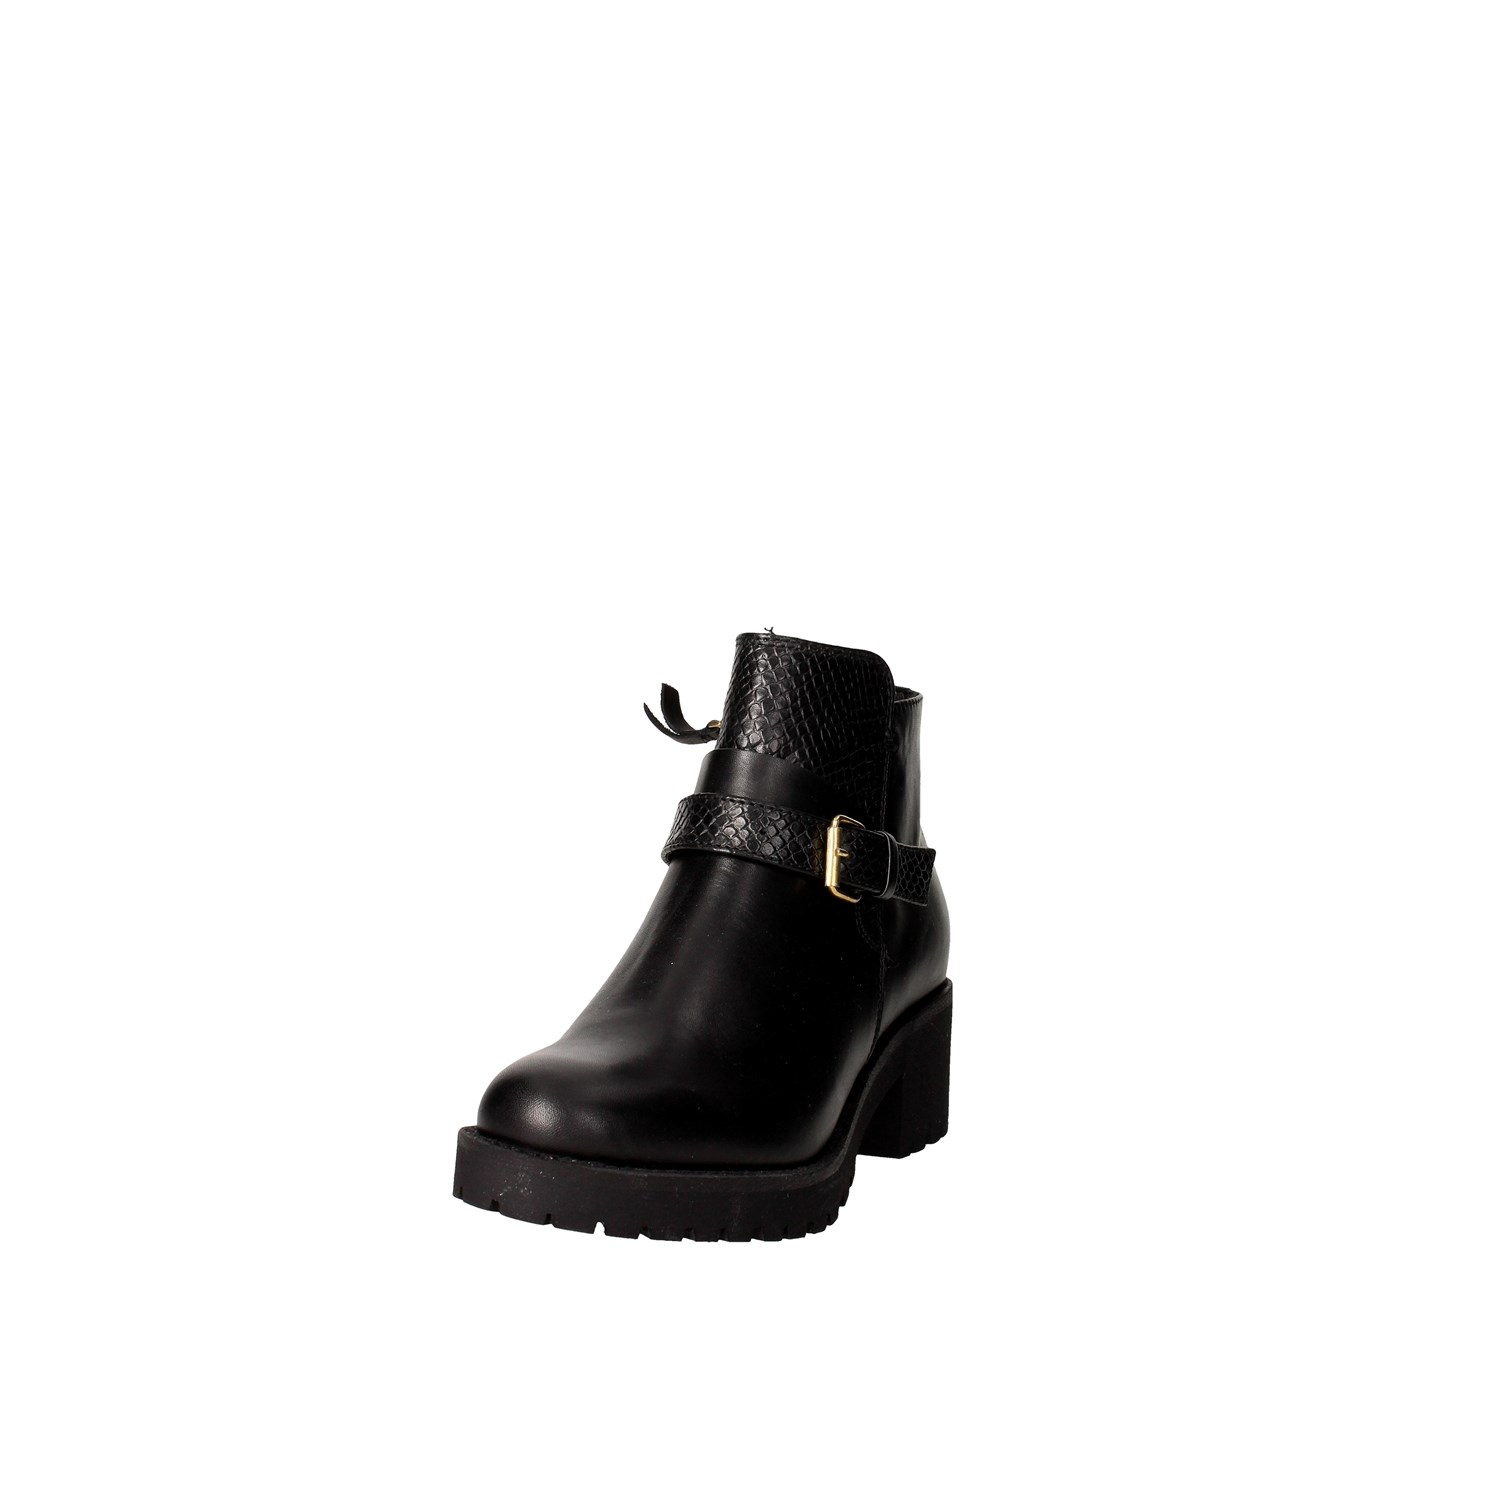 Ankle Damens Stiefel With Wedge Heels Damens Ankle Docksteps DSE103680 Fall/Winter e6d4b6